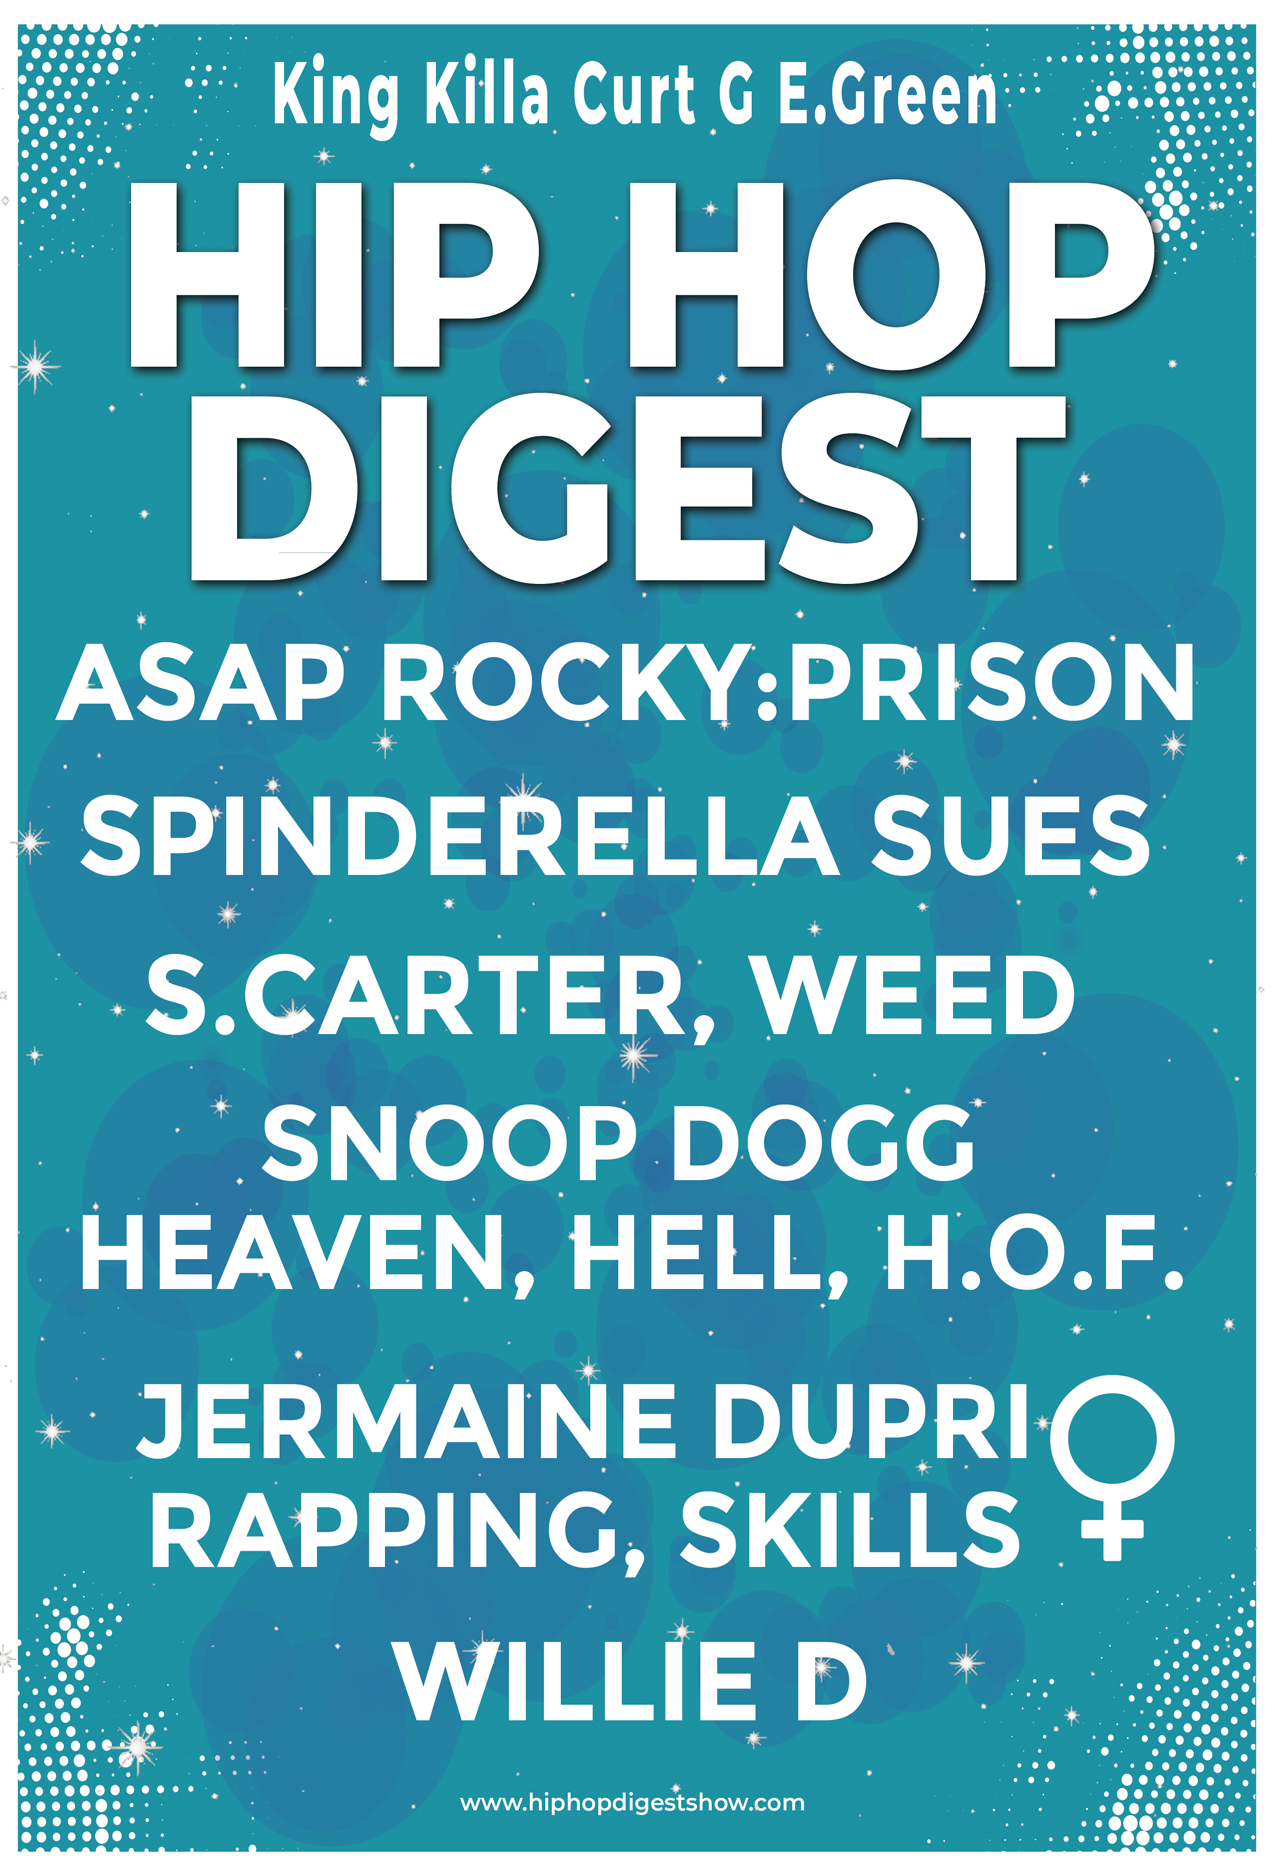 Hip-Hop Digest | Hip-Hop Digest Show